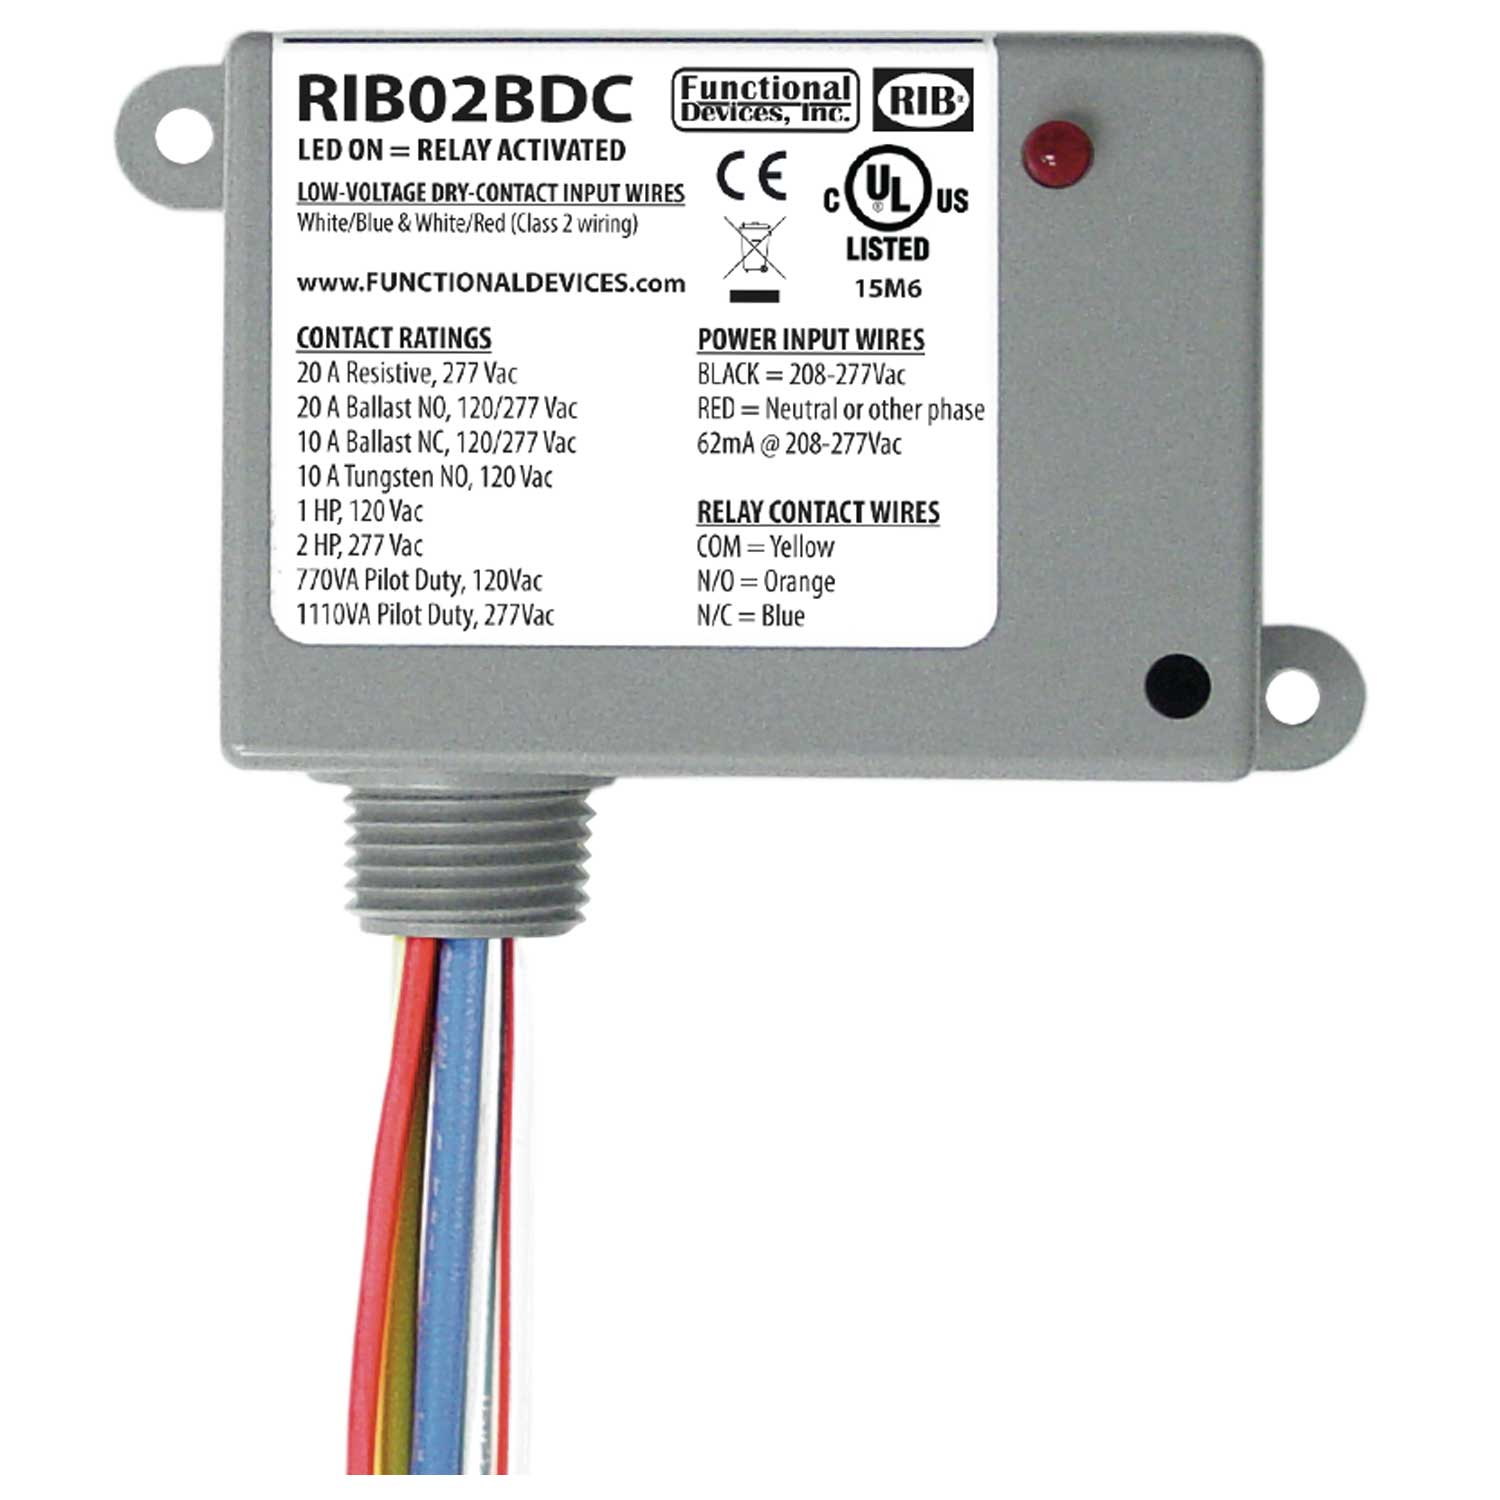 Functional Devices Rib Rib02bdc Enclosed Relay Class 2 Dry Dc Voltage Wiring In Series Furthermore Solid State Circuit Contact Input208 277vac Pwr 20a Spdt At Controls Central